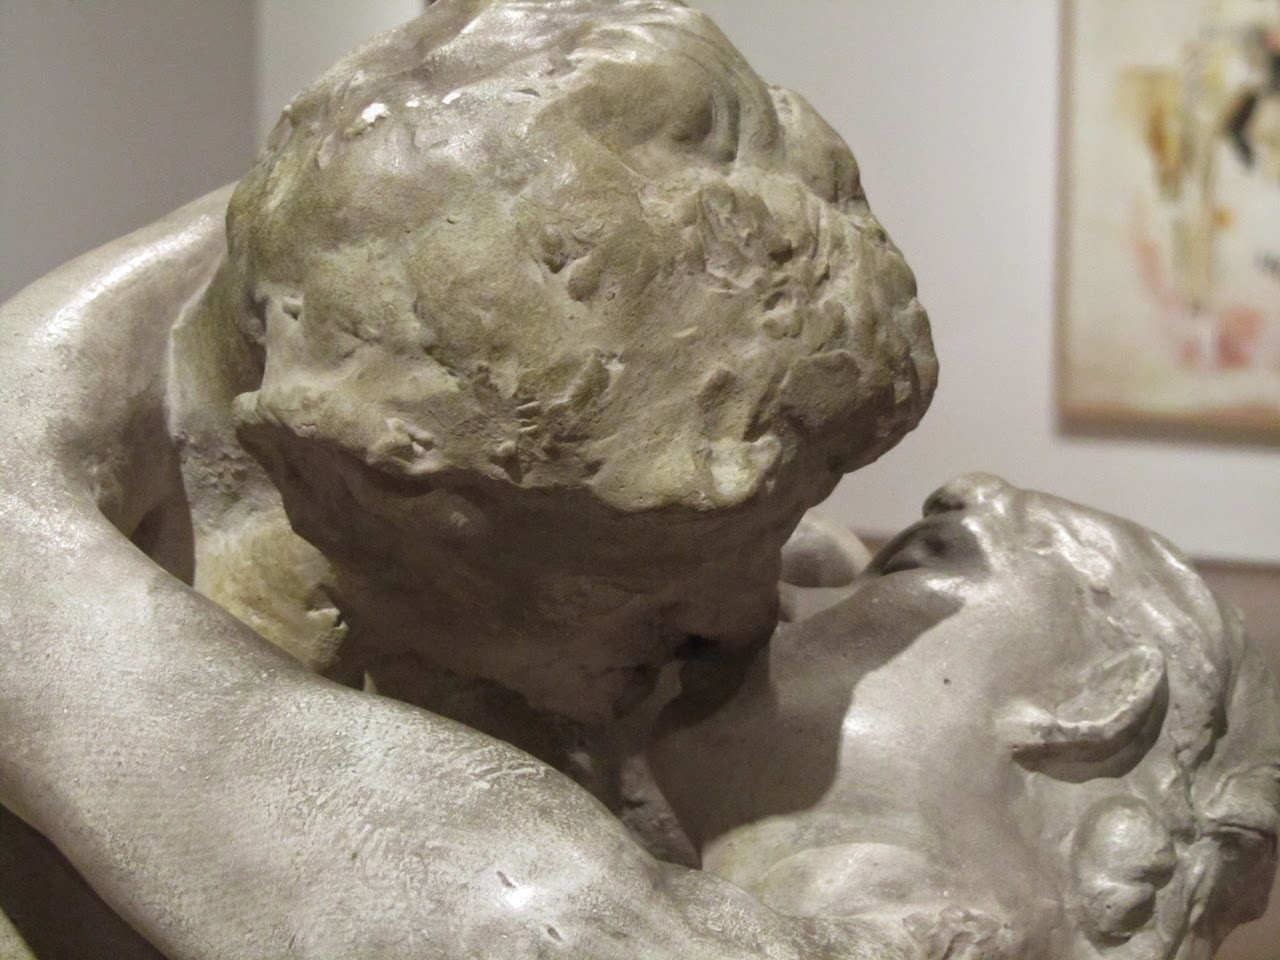 auguste rodin the kiss Unlike most editing & proofreading services, we edit for everything: grammar, spelling, punctuation, idea flow, sentence structure, & more get started now.